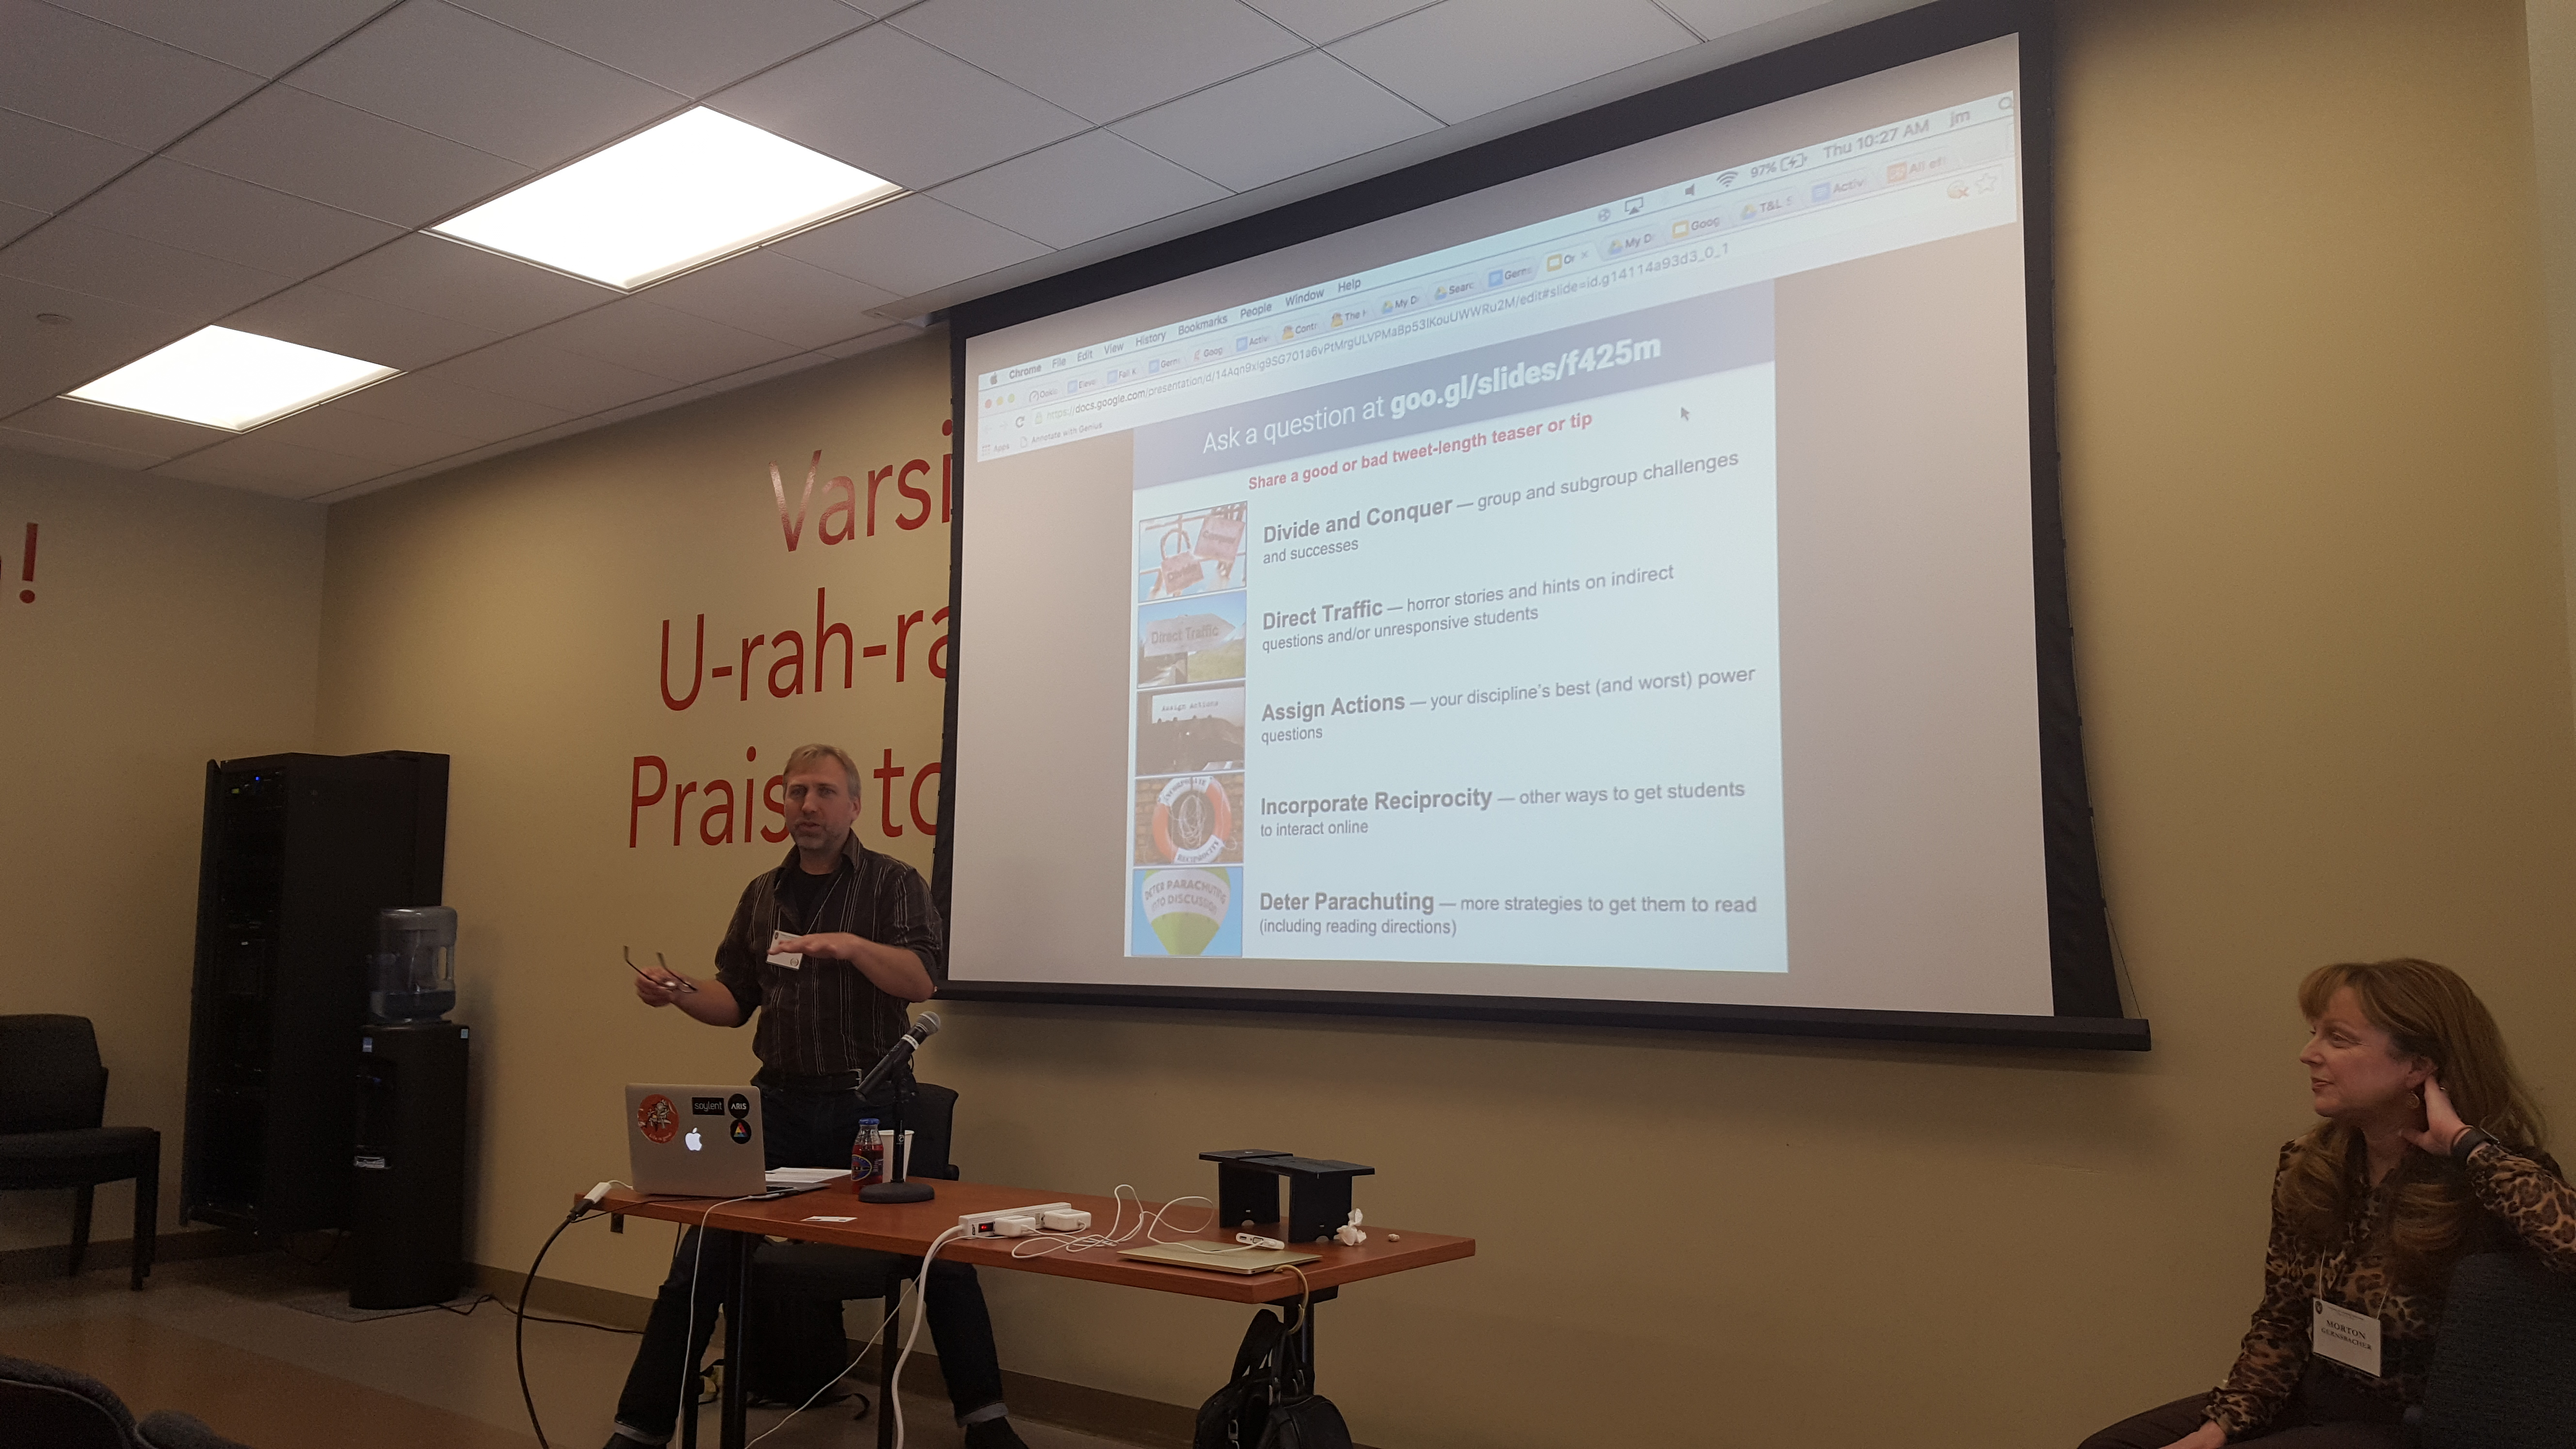 John Martin co-presents with Morton Ann Gernsbacher about improving online discussion boards